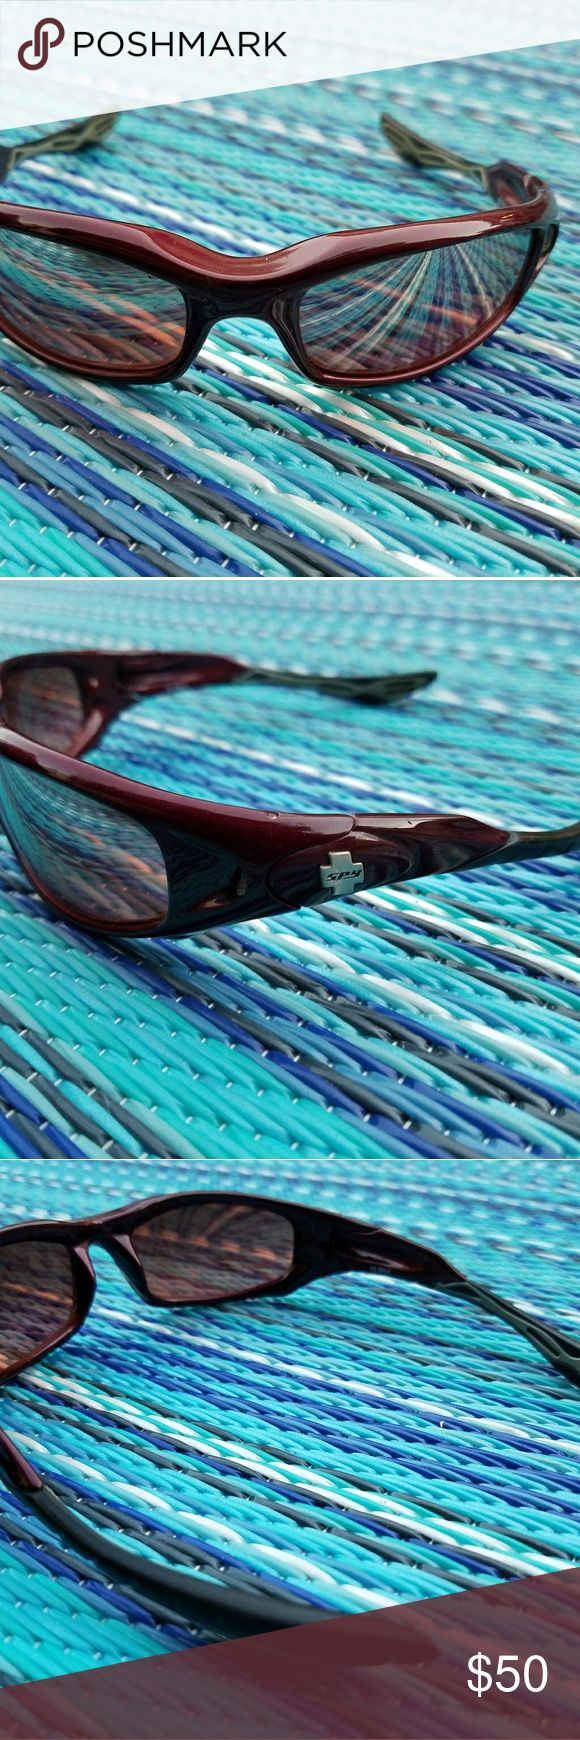 Spy sunglasses (maroon) Name brand: Spy   Sunglasses   Scoop HS   color: burgundy SPY Accessories Sunglasses